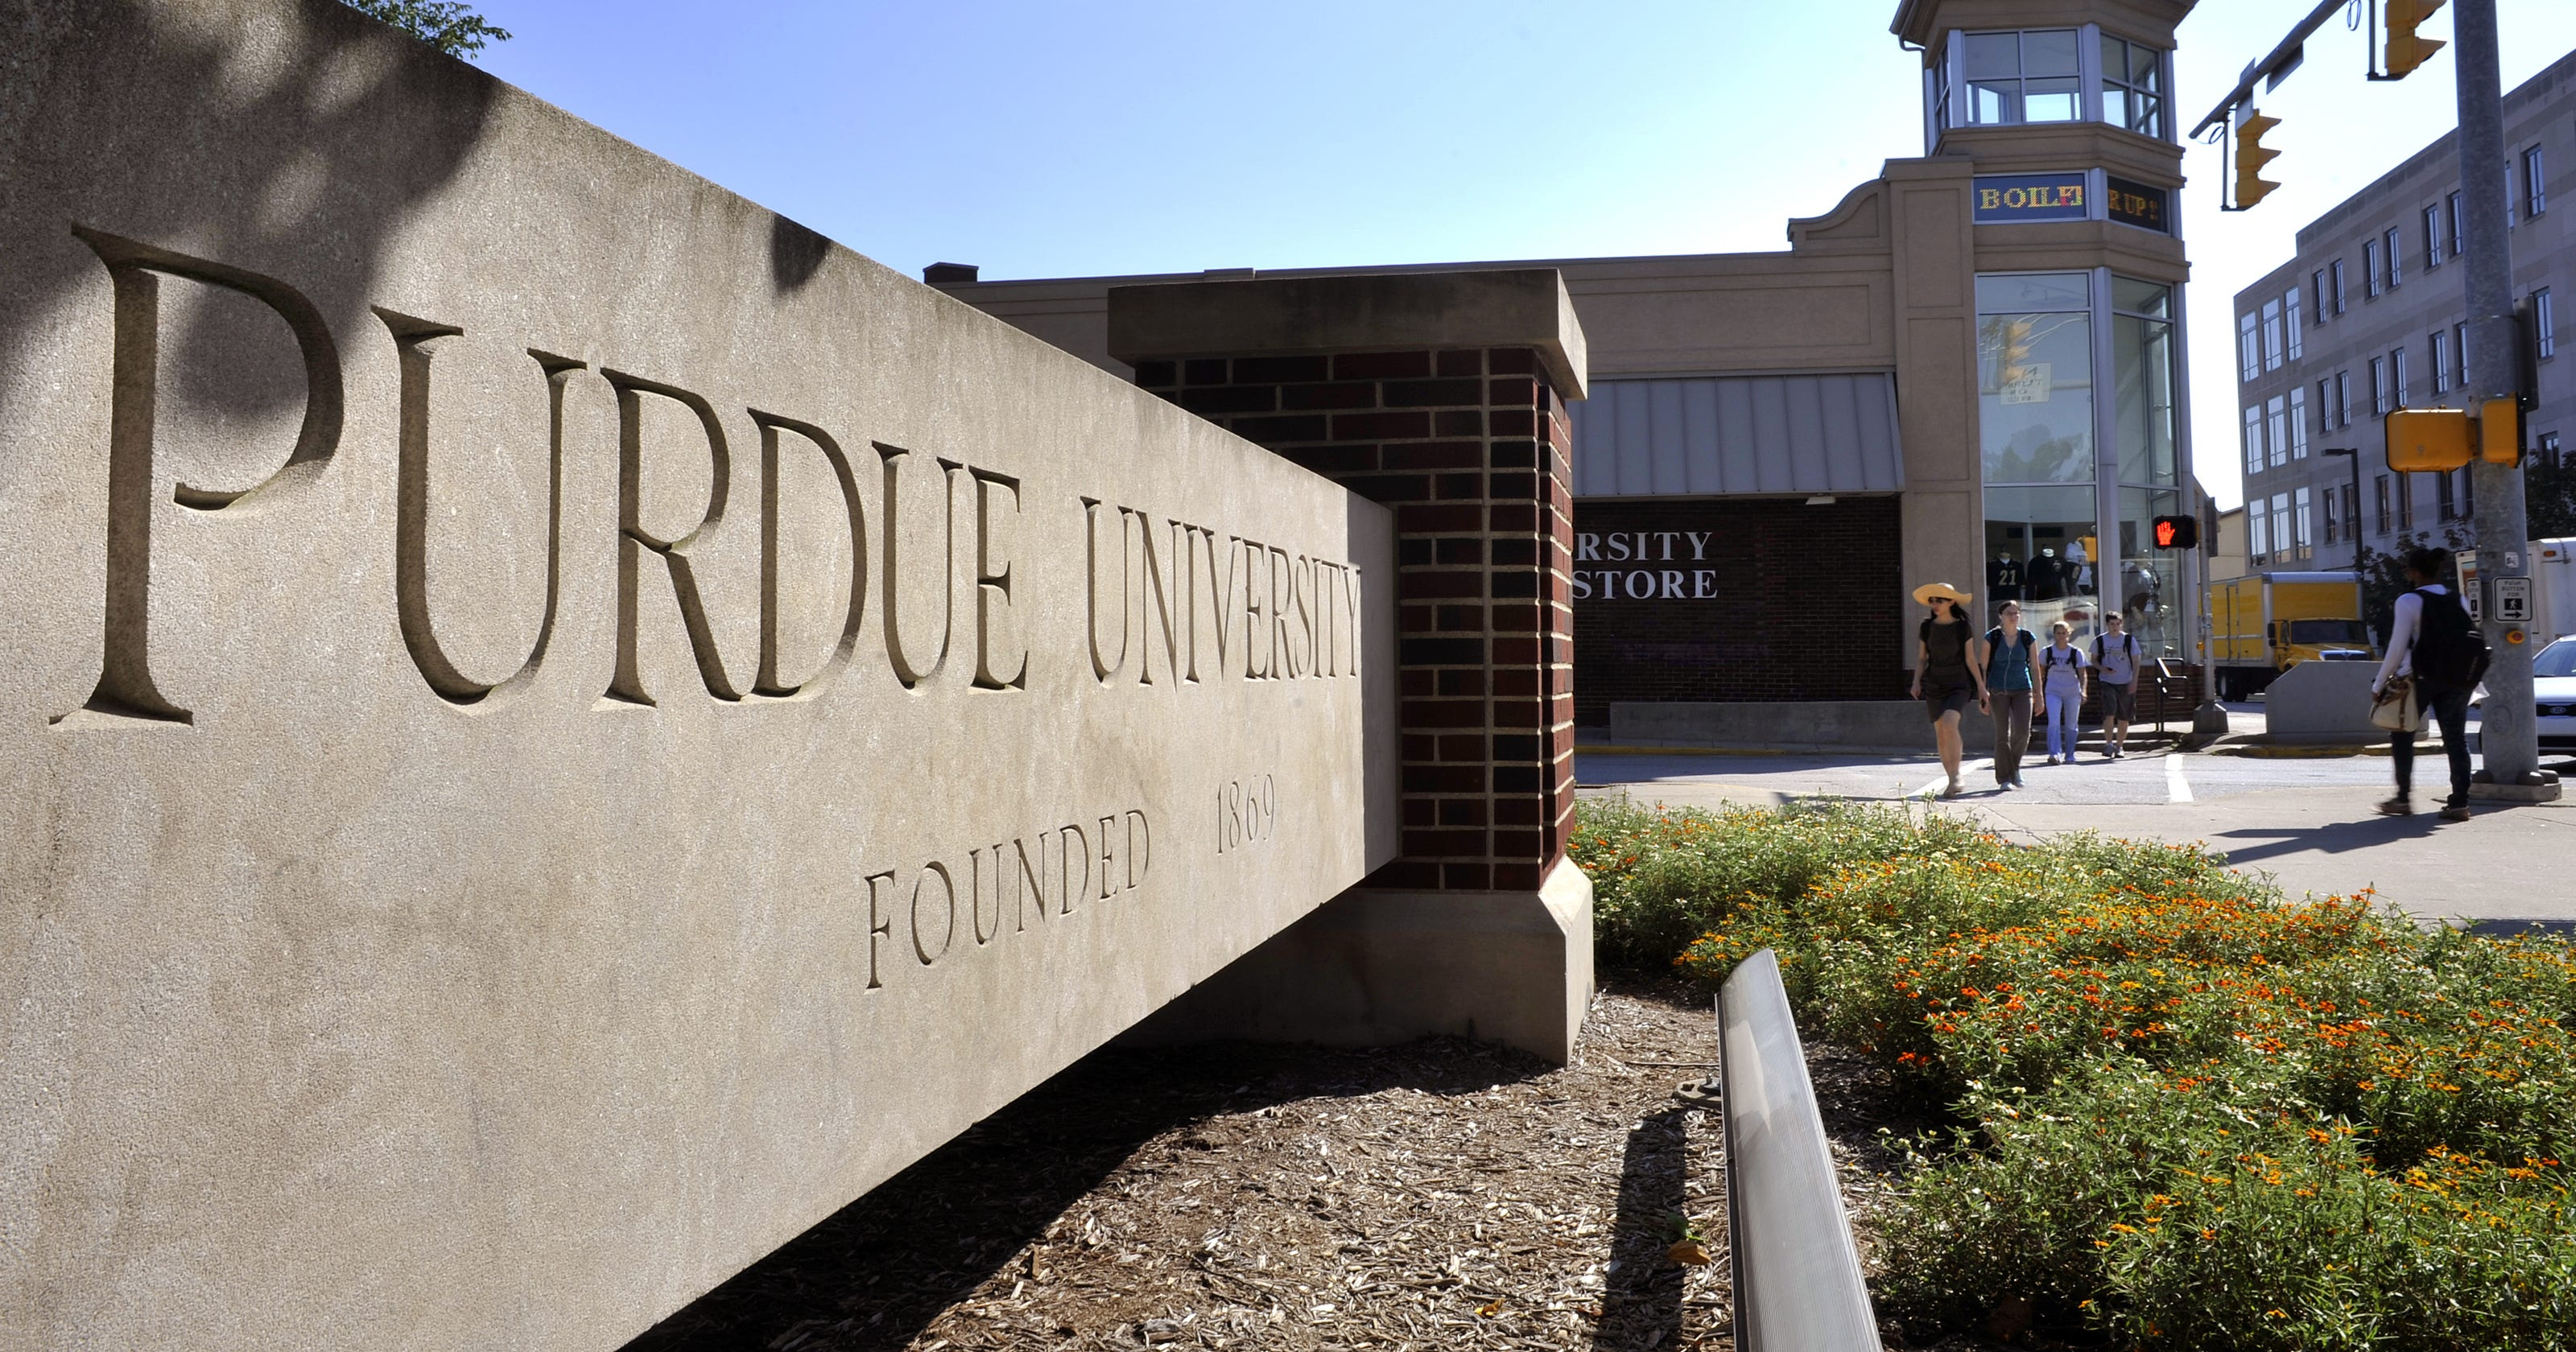 Purdue tackles cheating dilemma